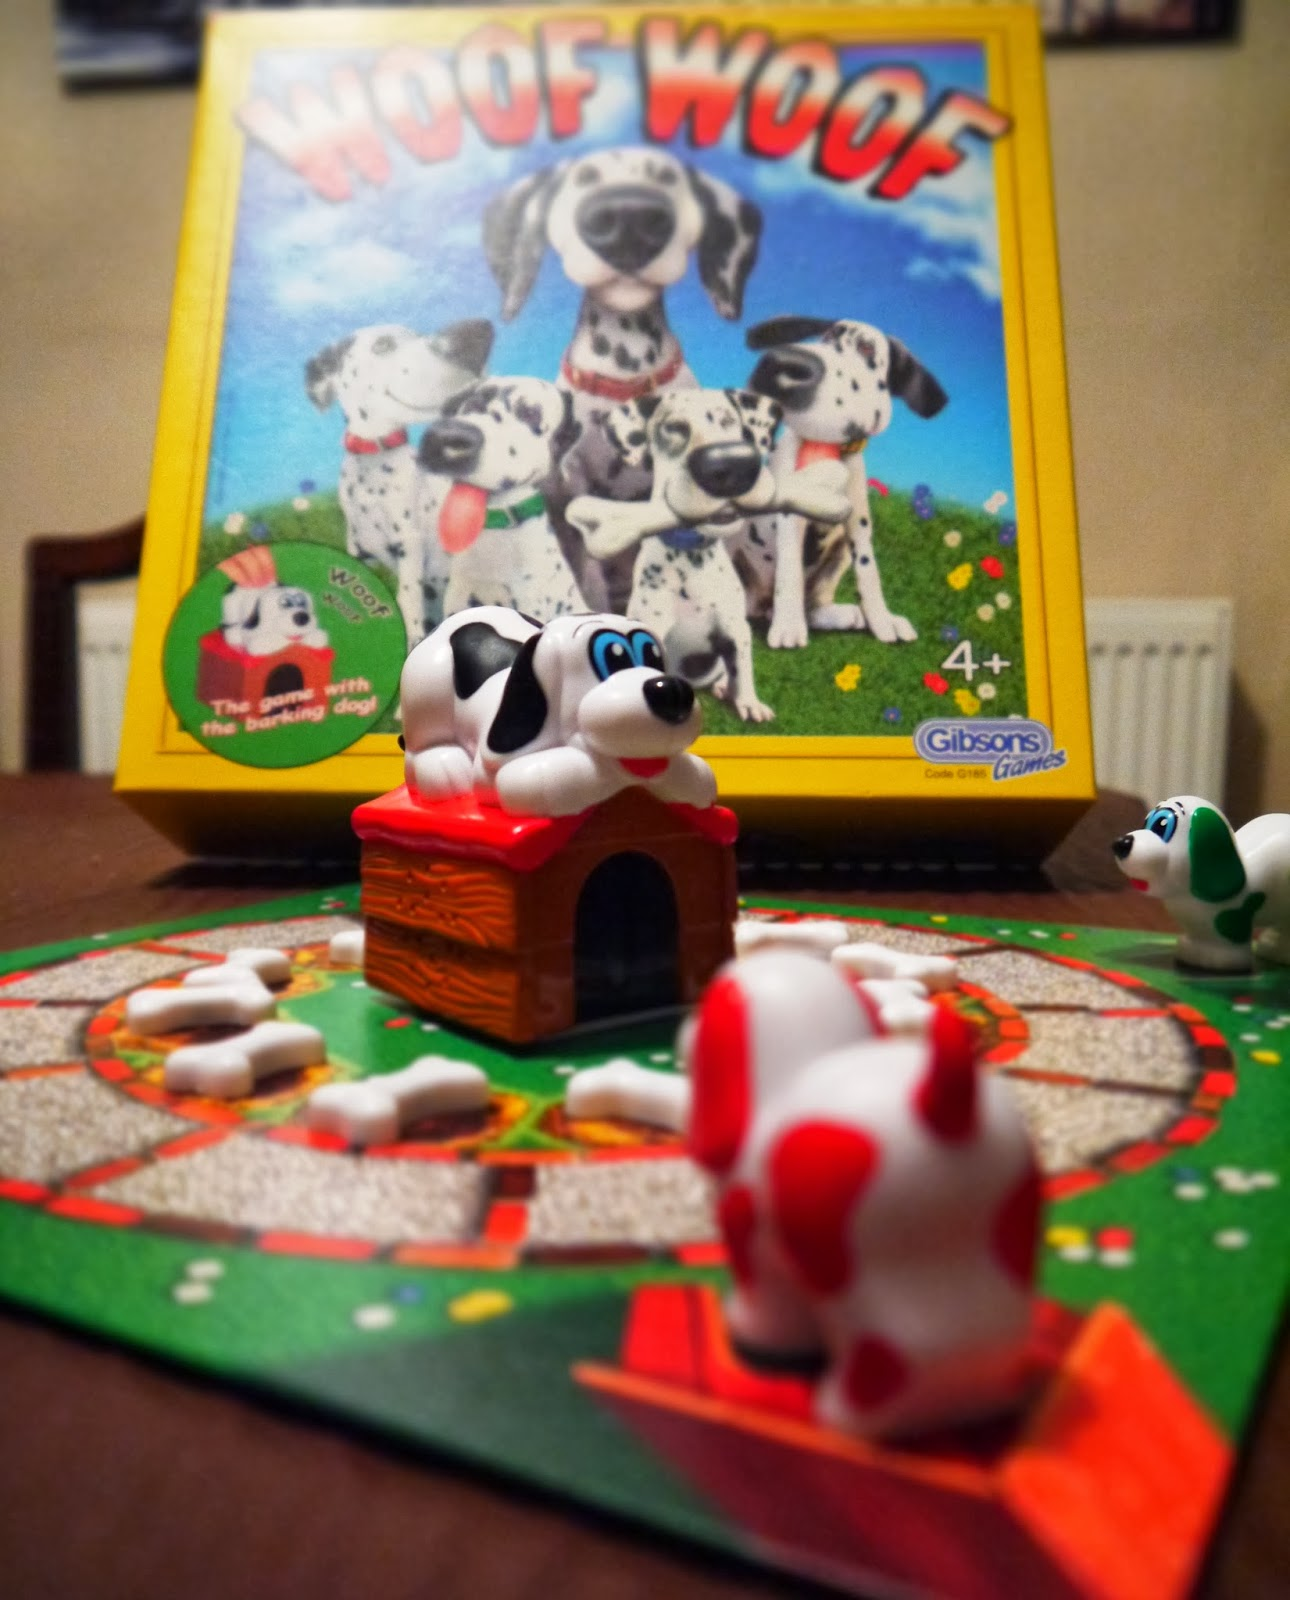 Woof woof board game